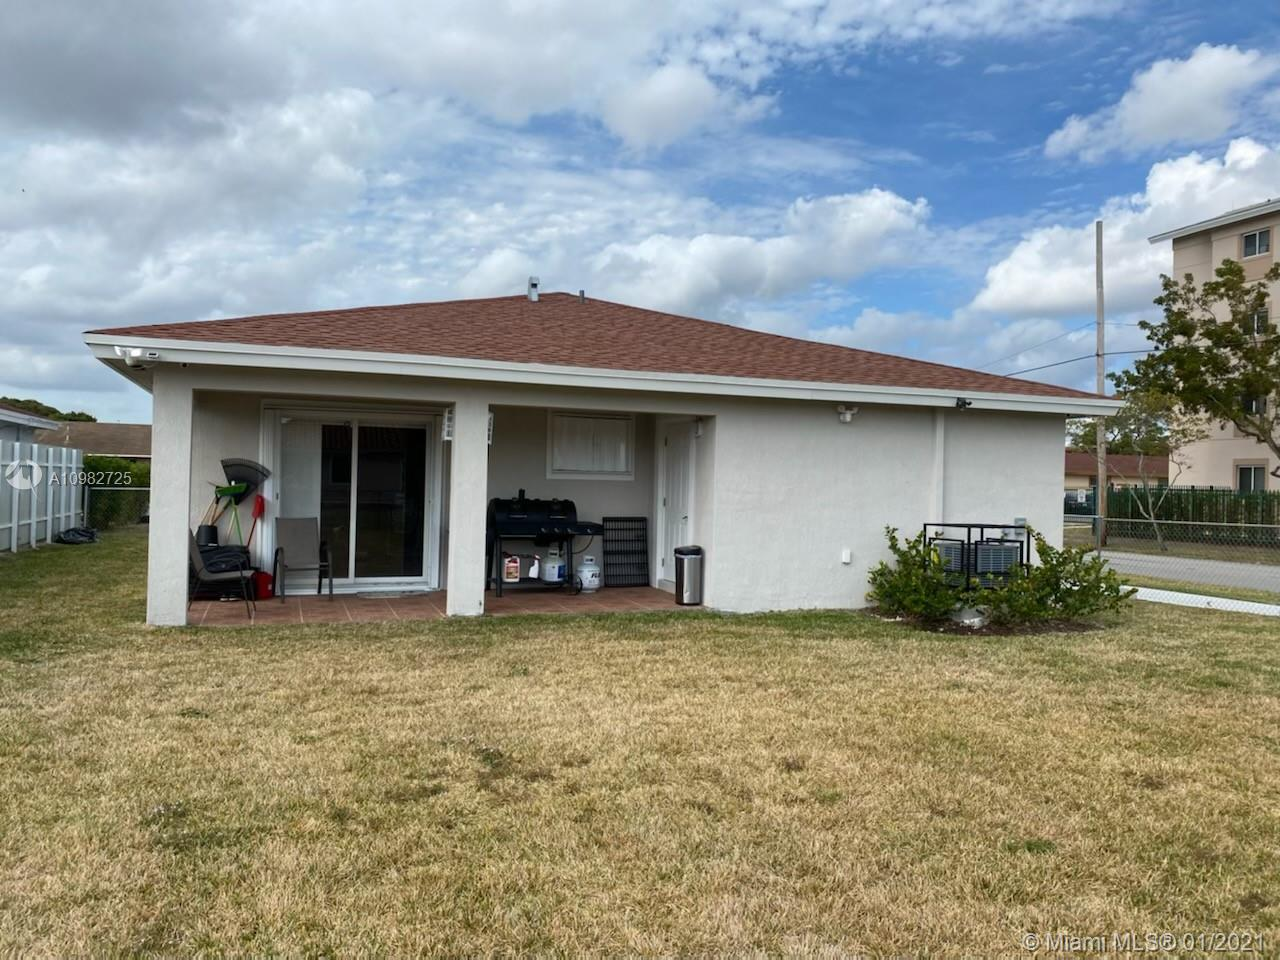 18889 NW 35th Ave, Miami Gardens, Florida 33056, 5 Bedrooms Bedrooms, ,3 BathroomsBathrooms,Residential,For Sale,18889 NW 35th Ave,A10982725